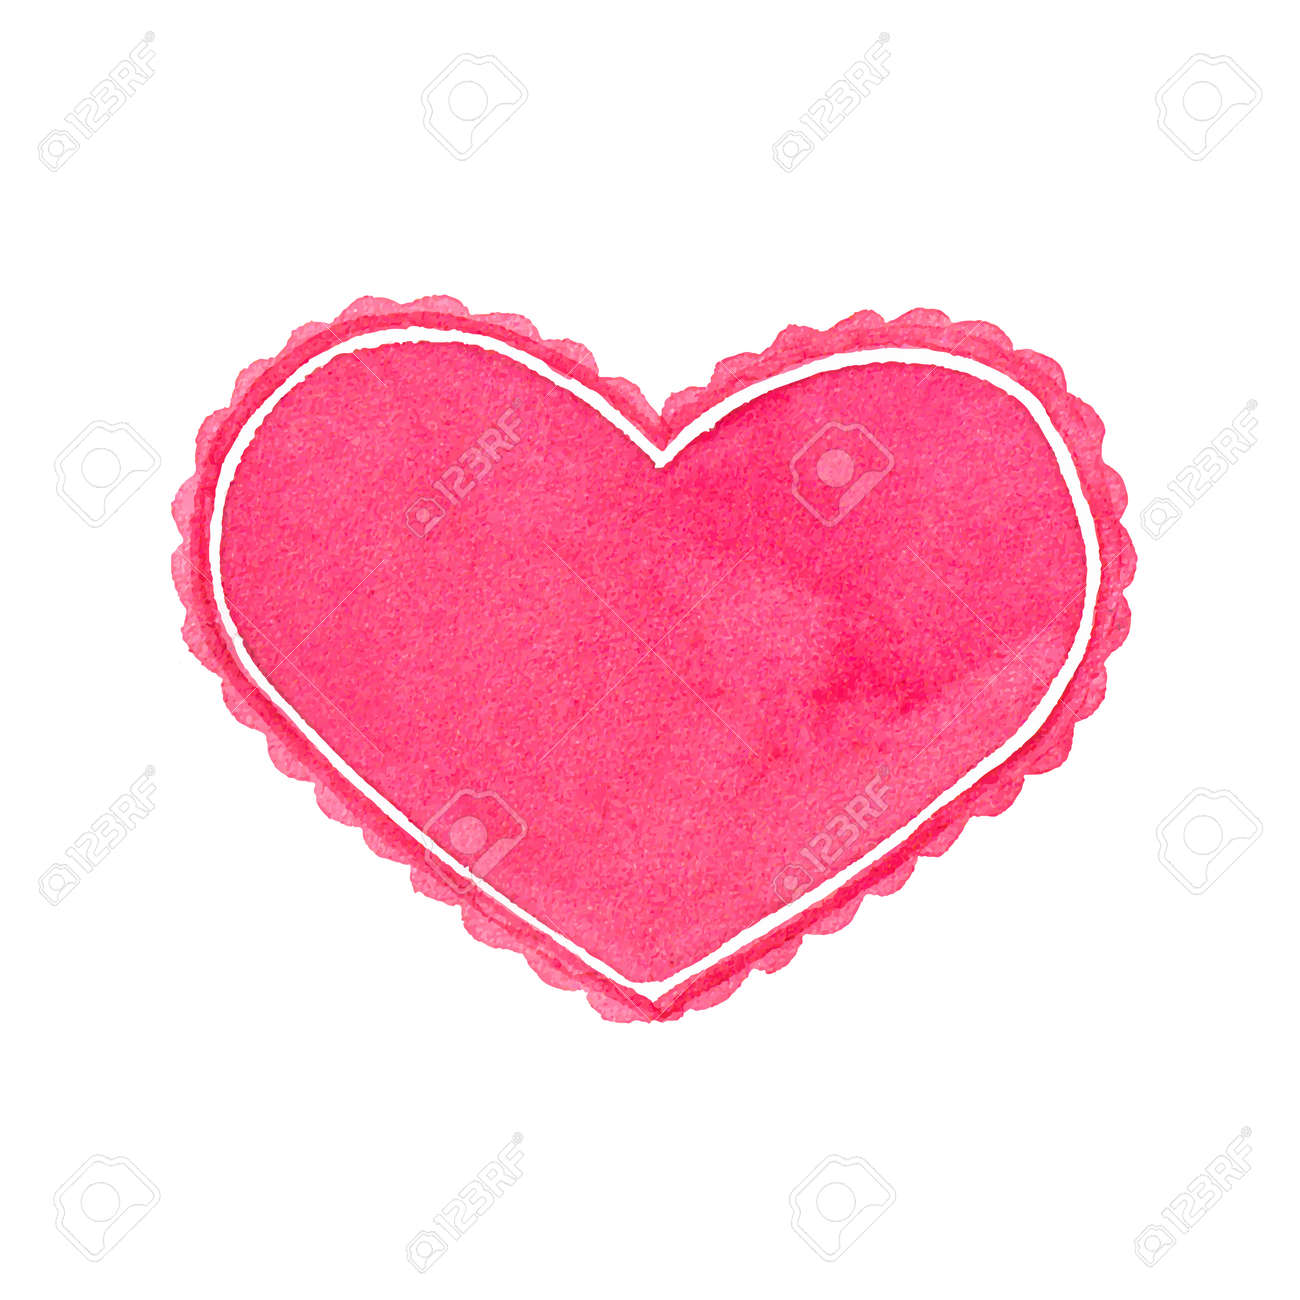 Watercolor Heart Frame On The White Background Royalty Free Cliparts ...